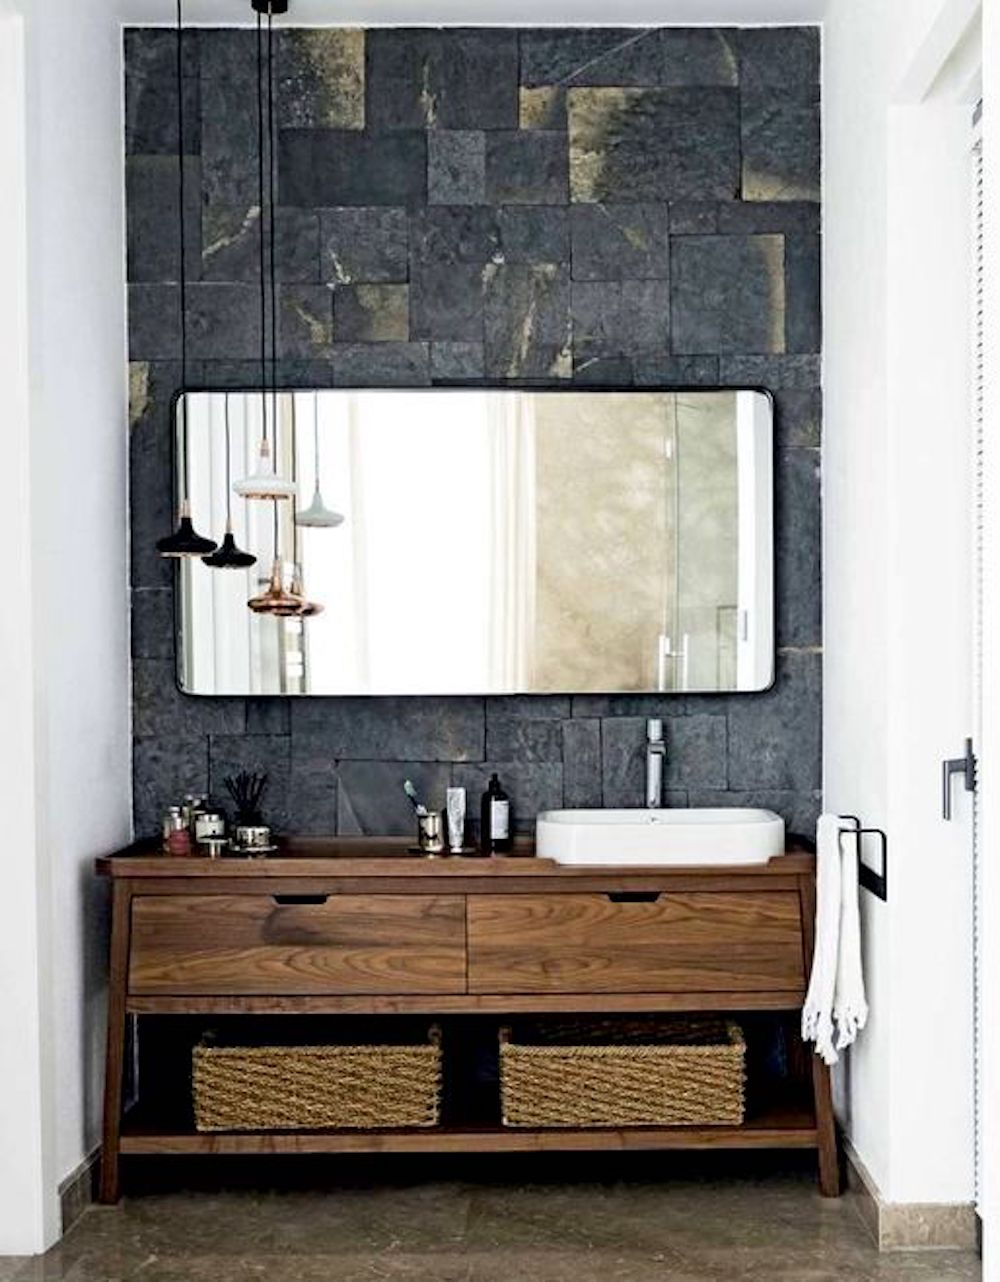 Making a feature of the wooden vanity using dark tiles as a backdrop